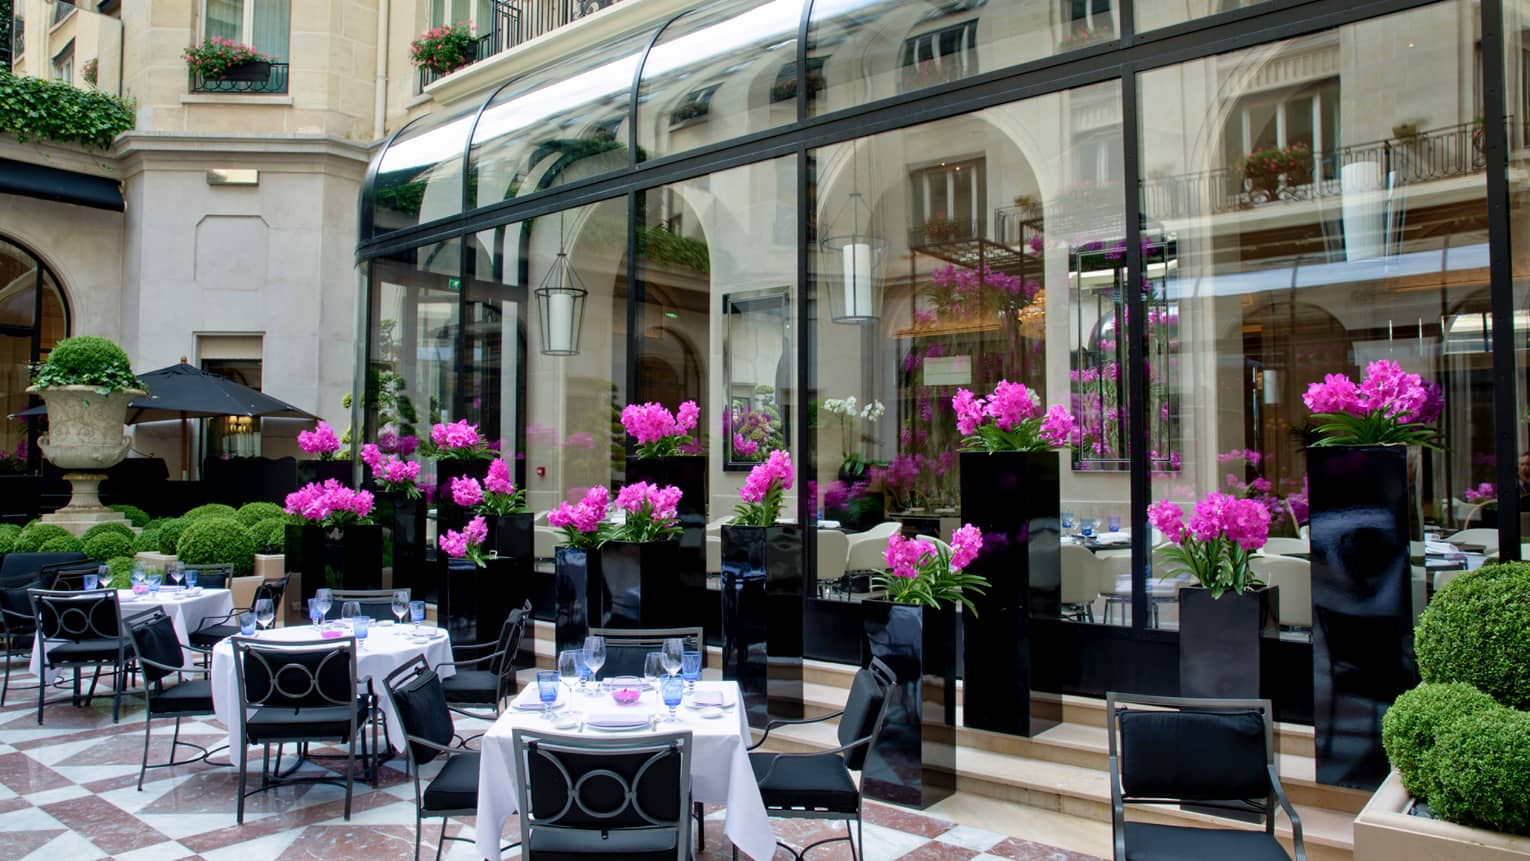 L'Orangerie courtyard patio, dining tables by purple flowers